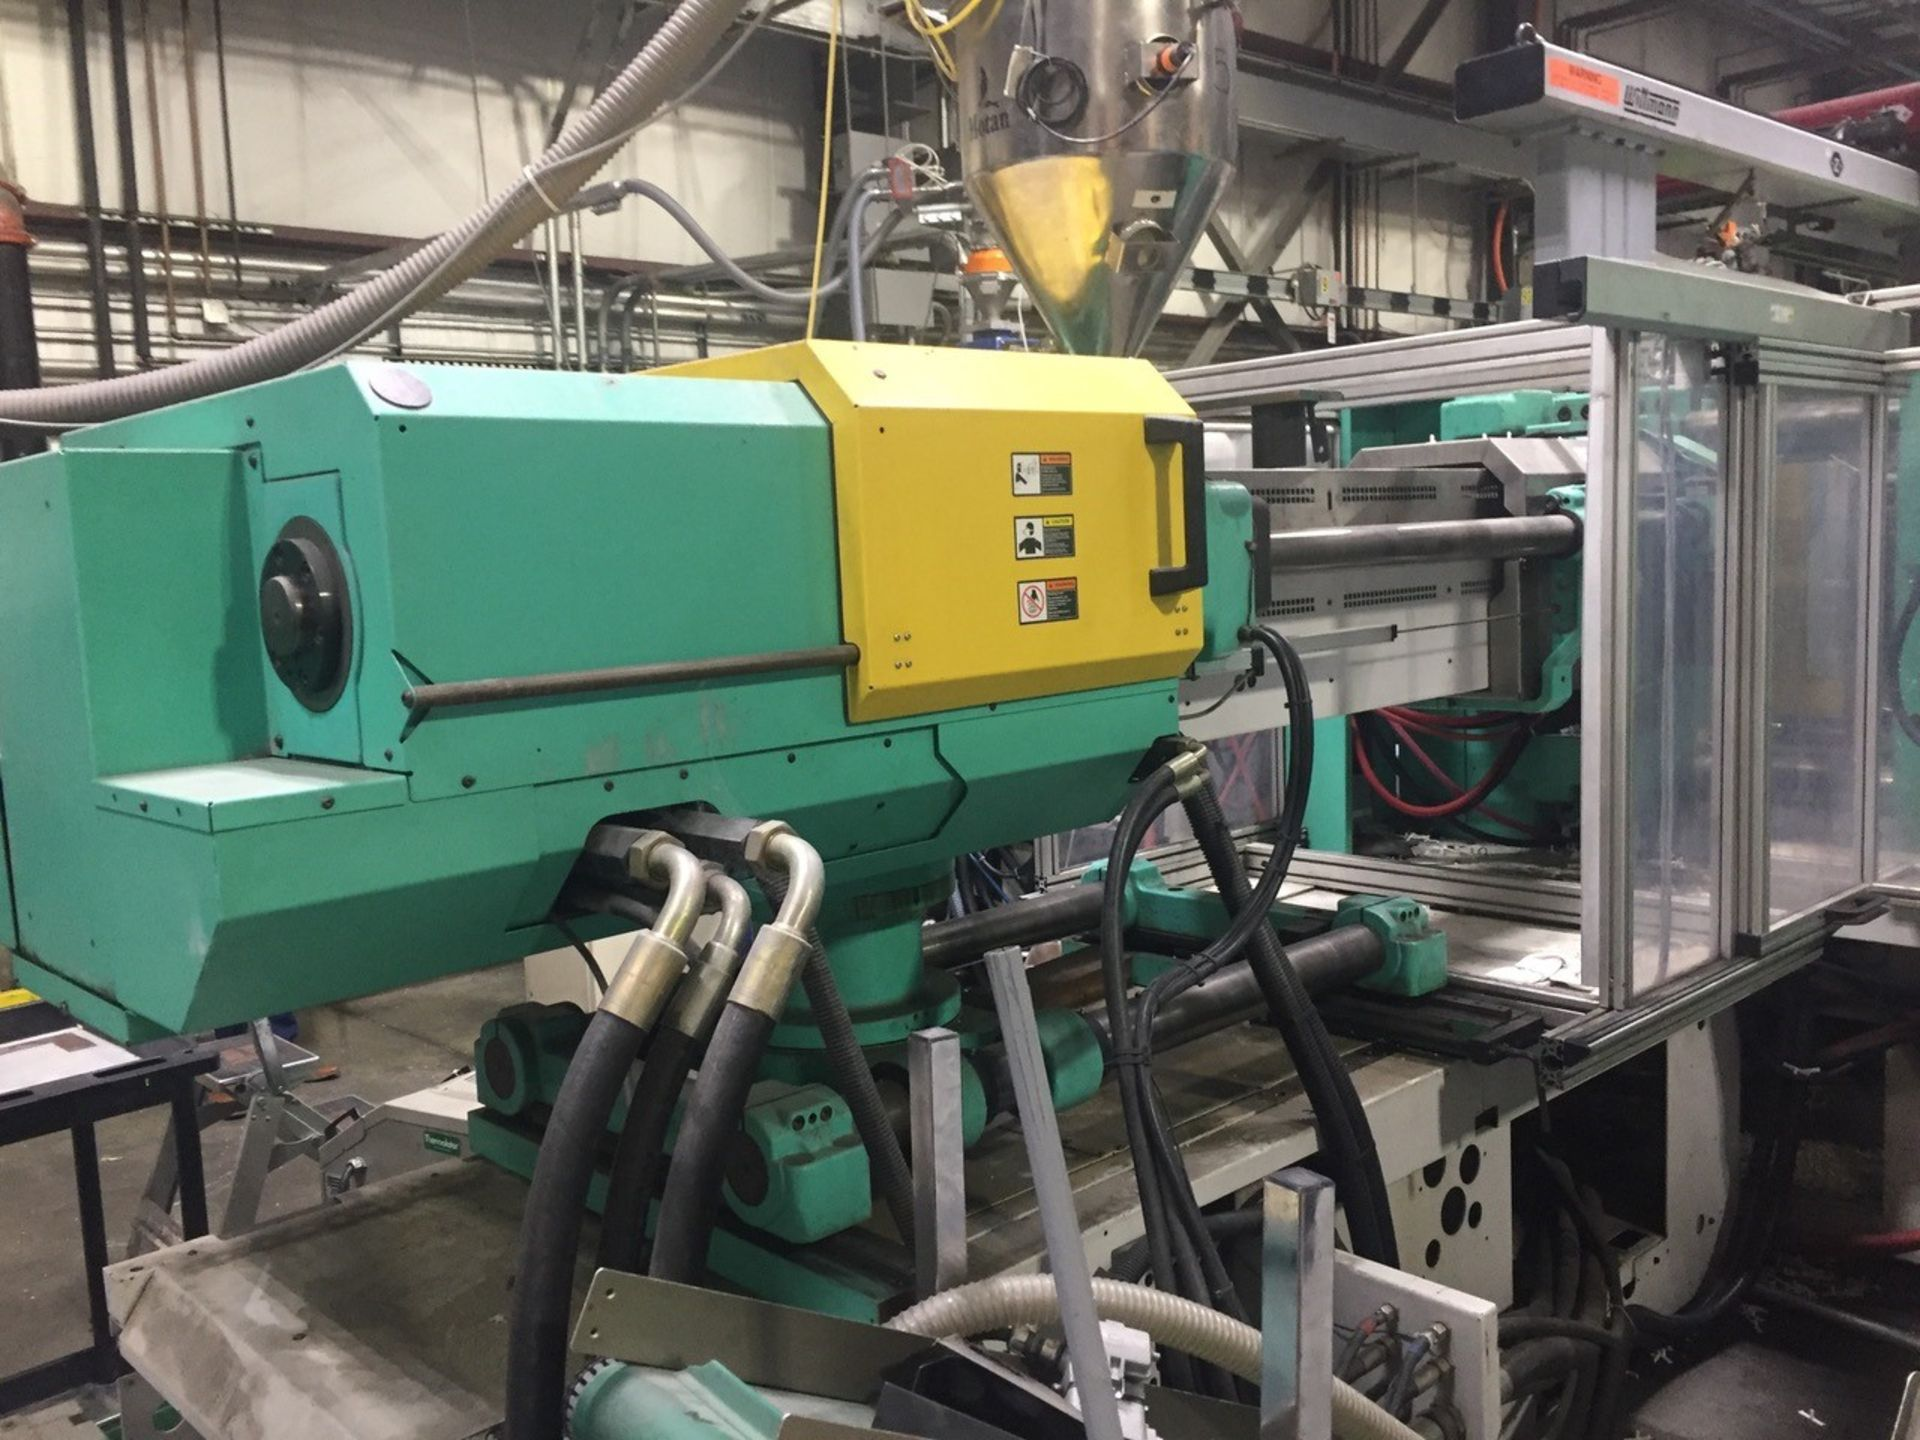 Lot 136C - 360 Ton, 34.7 oz./34.7 oz. Arburg 2-Shot Injection Molding Machine (2003)